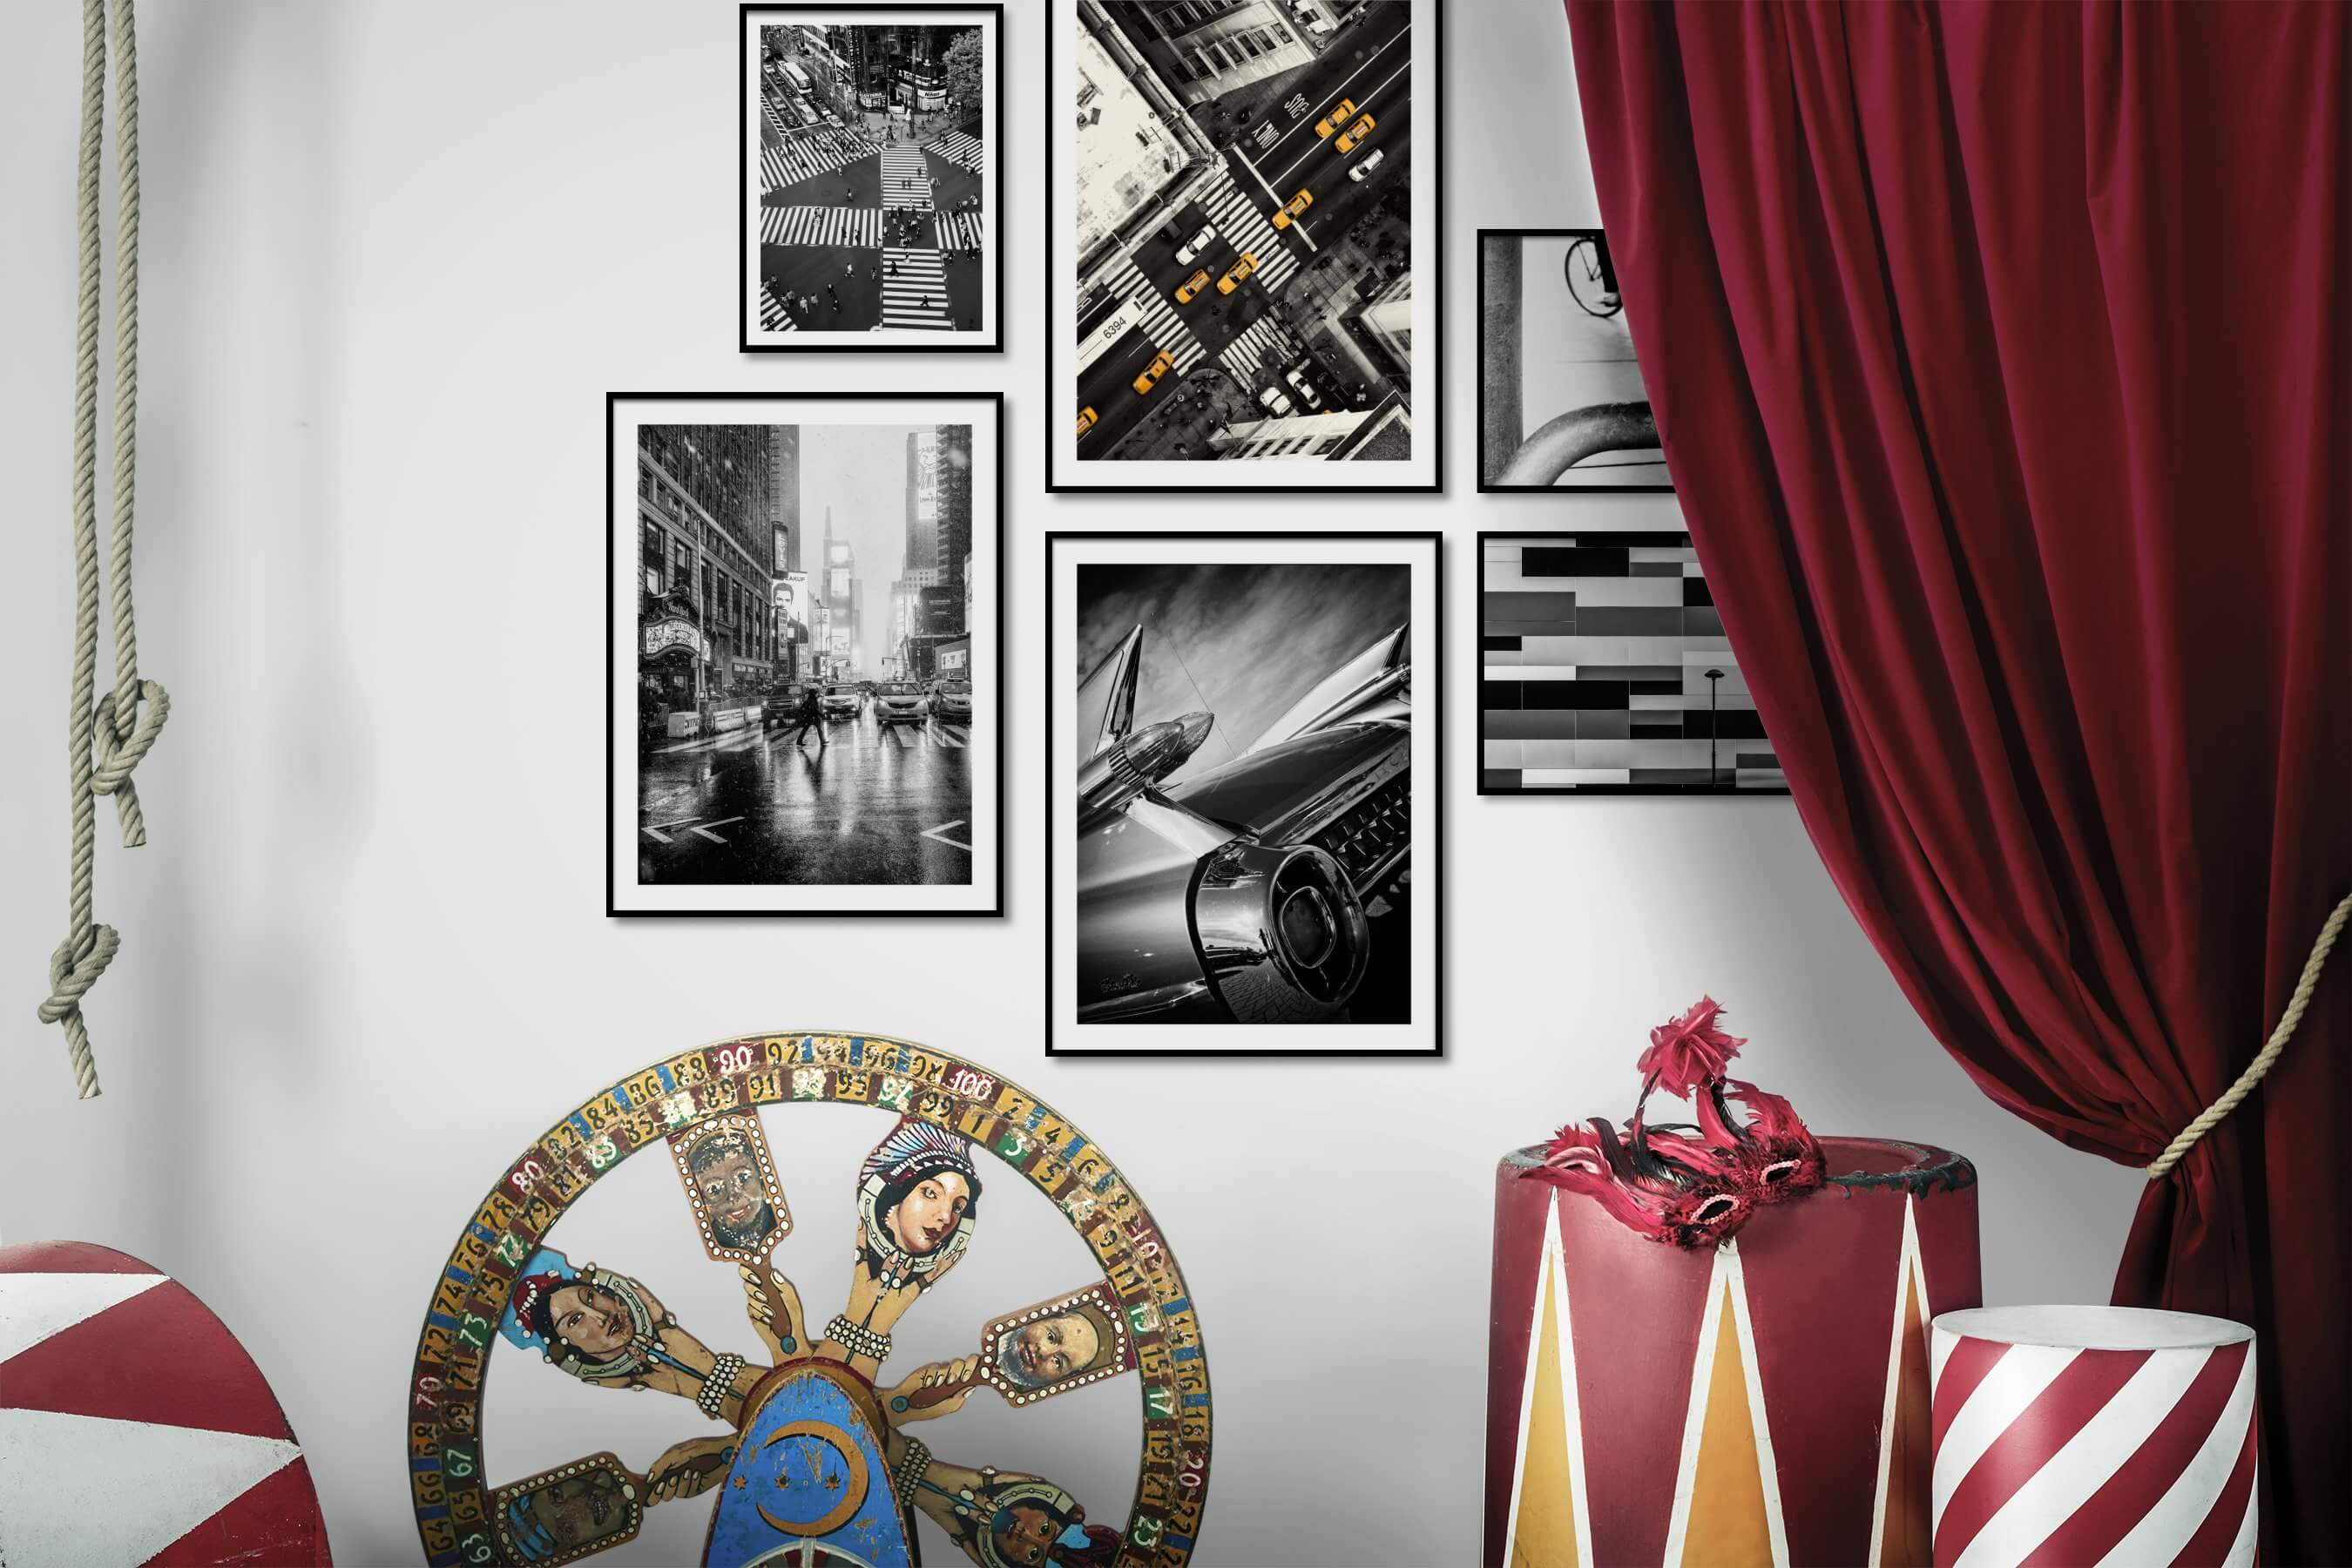 Gallery wall idea with six framed pictures arranged on a wall depicting Black & White, City Life, Americana, Vintage, and For the Moderate